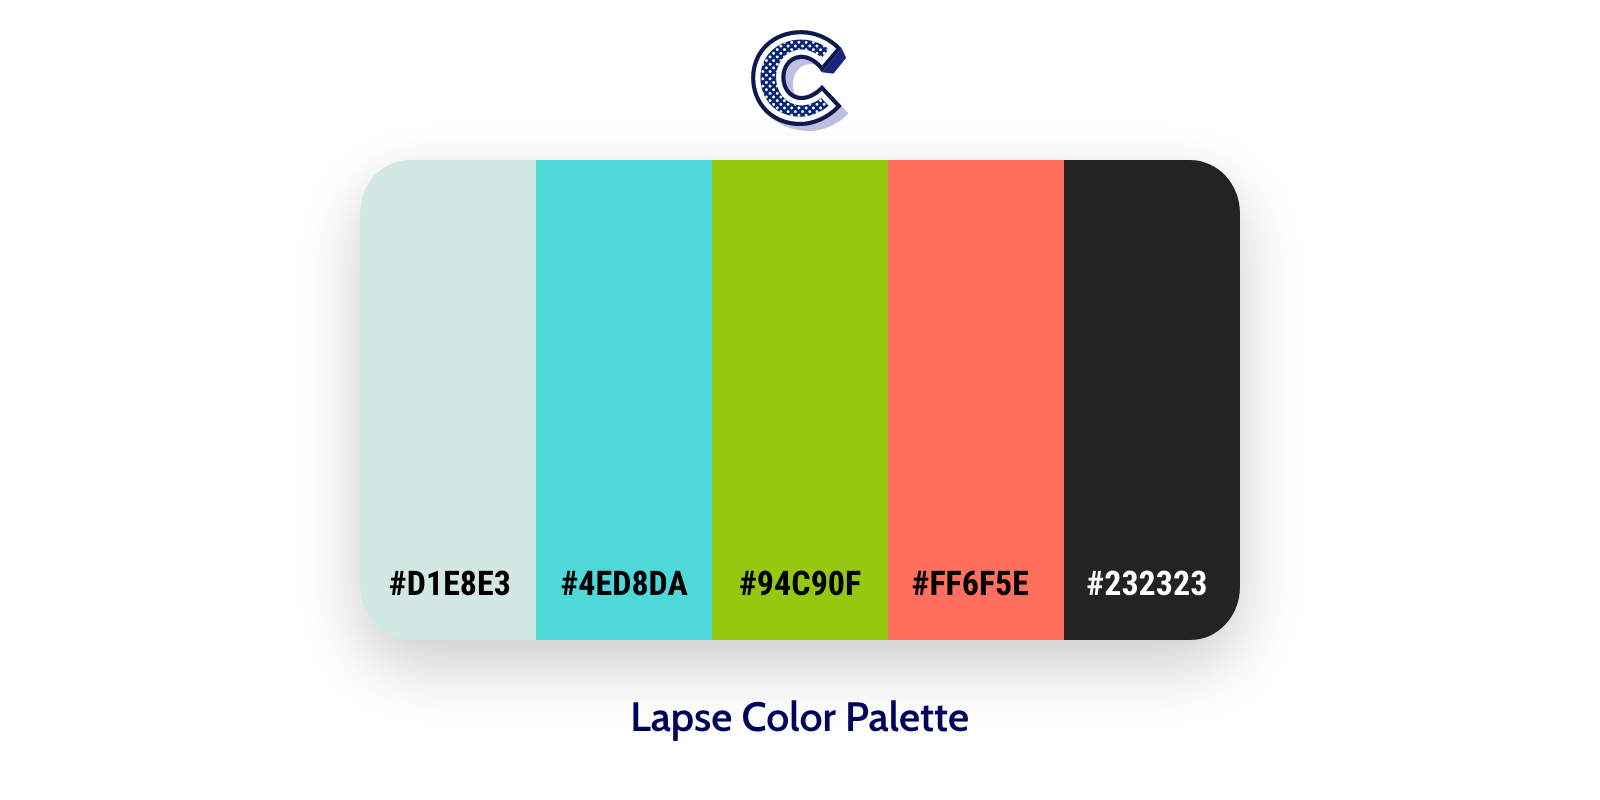 the featured image of lapse color palette